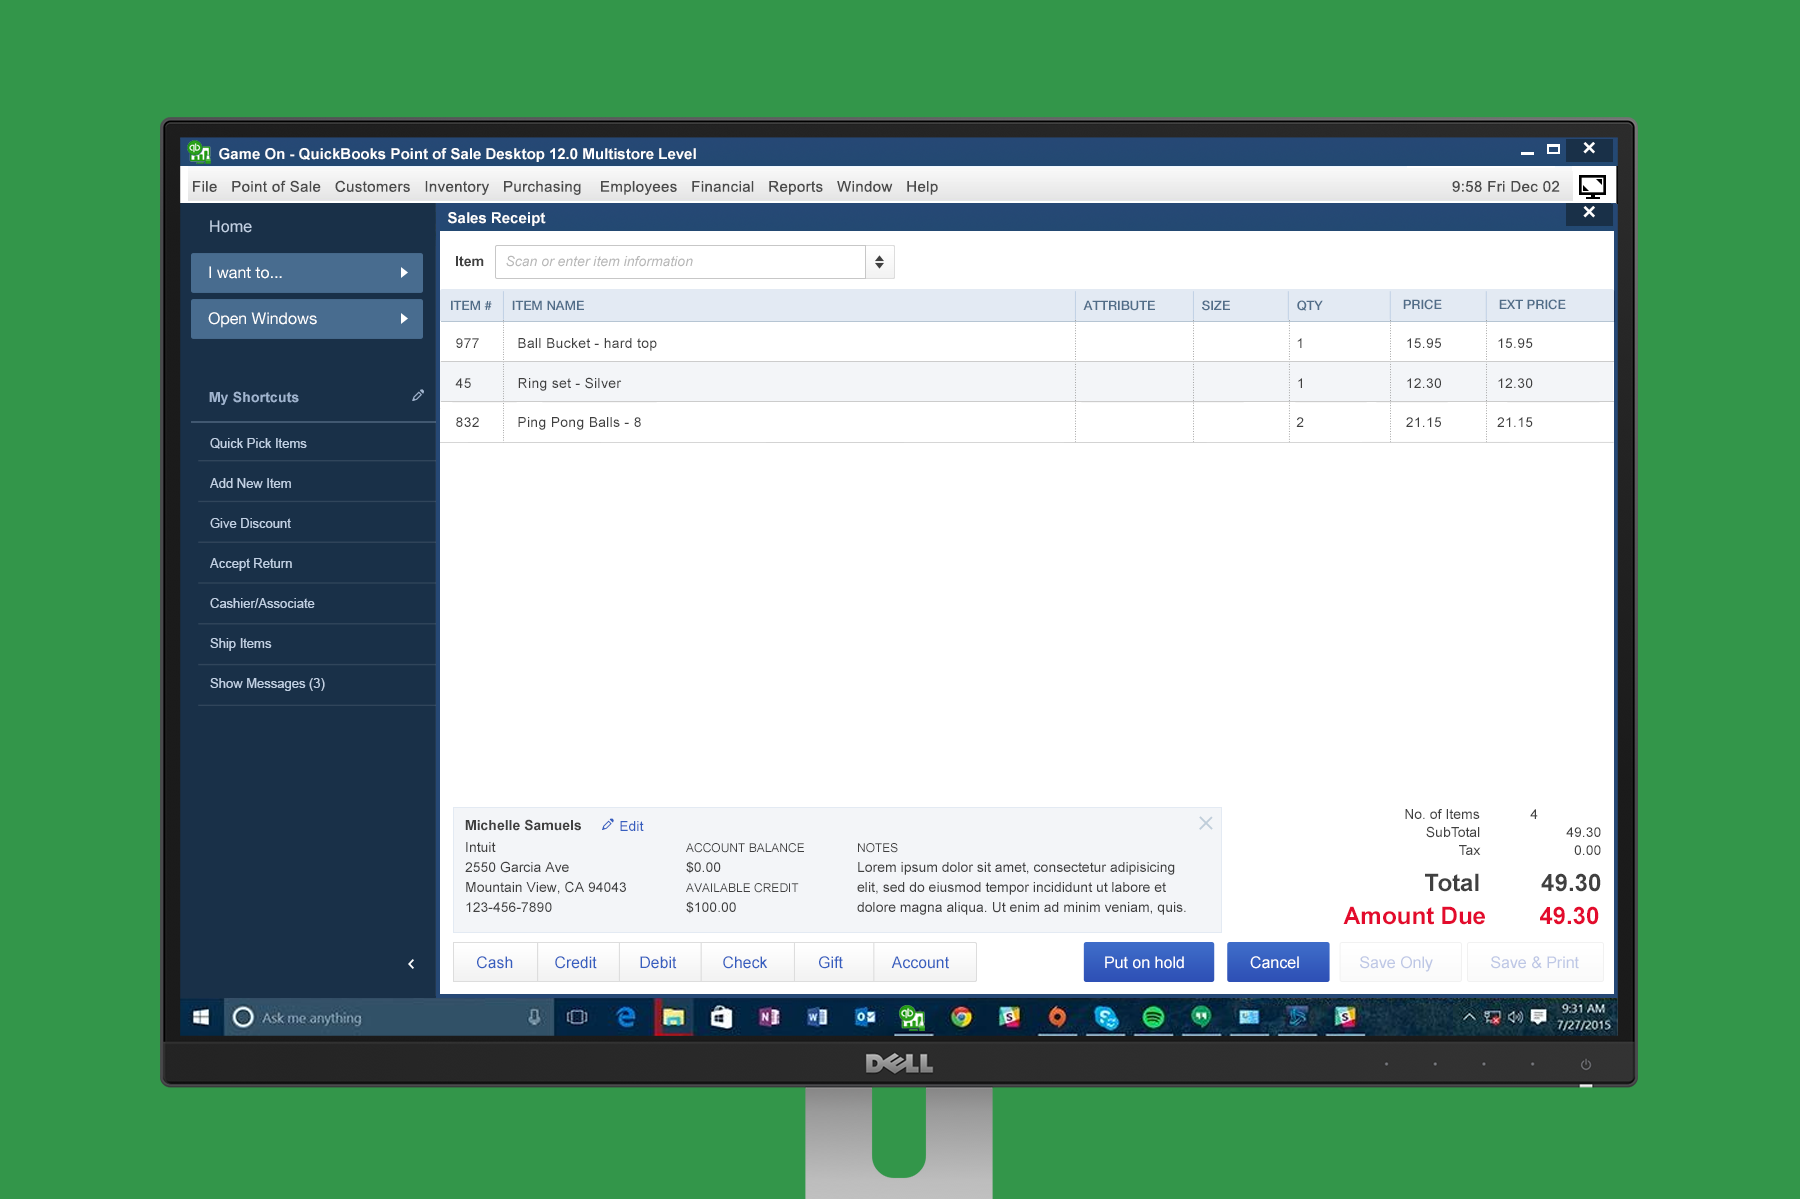 Make a Sale with my original visual design recommendation. I proposed using a similar style and color palette as QuickBooks Desktop and Online, which many POS customers use for accounting.